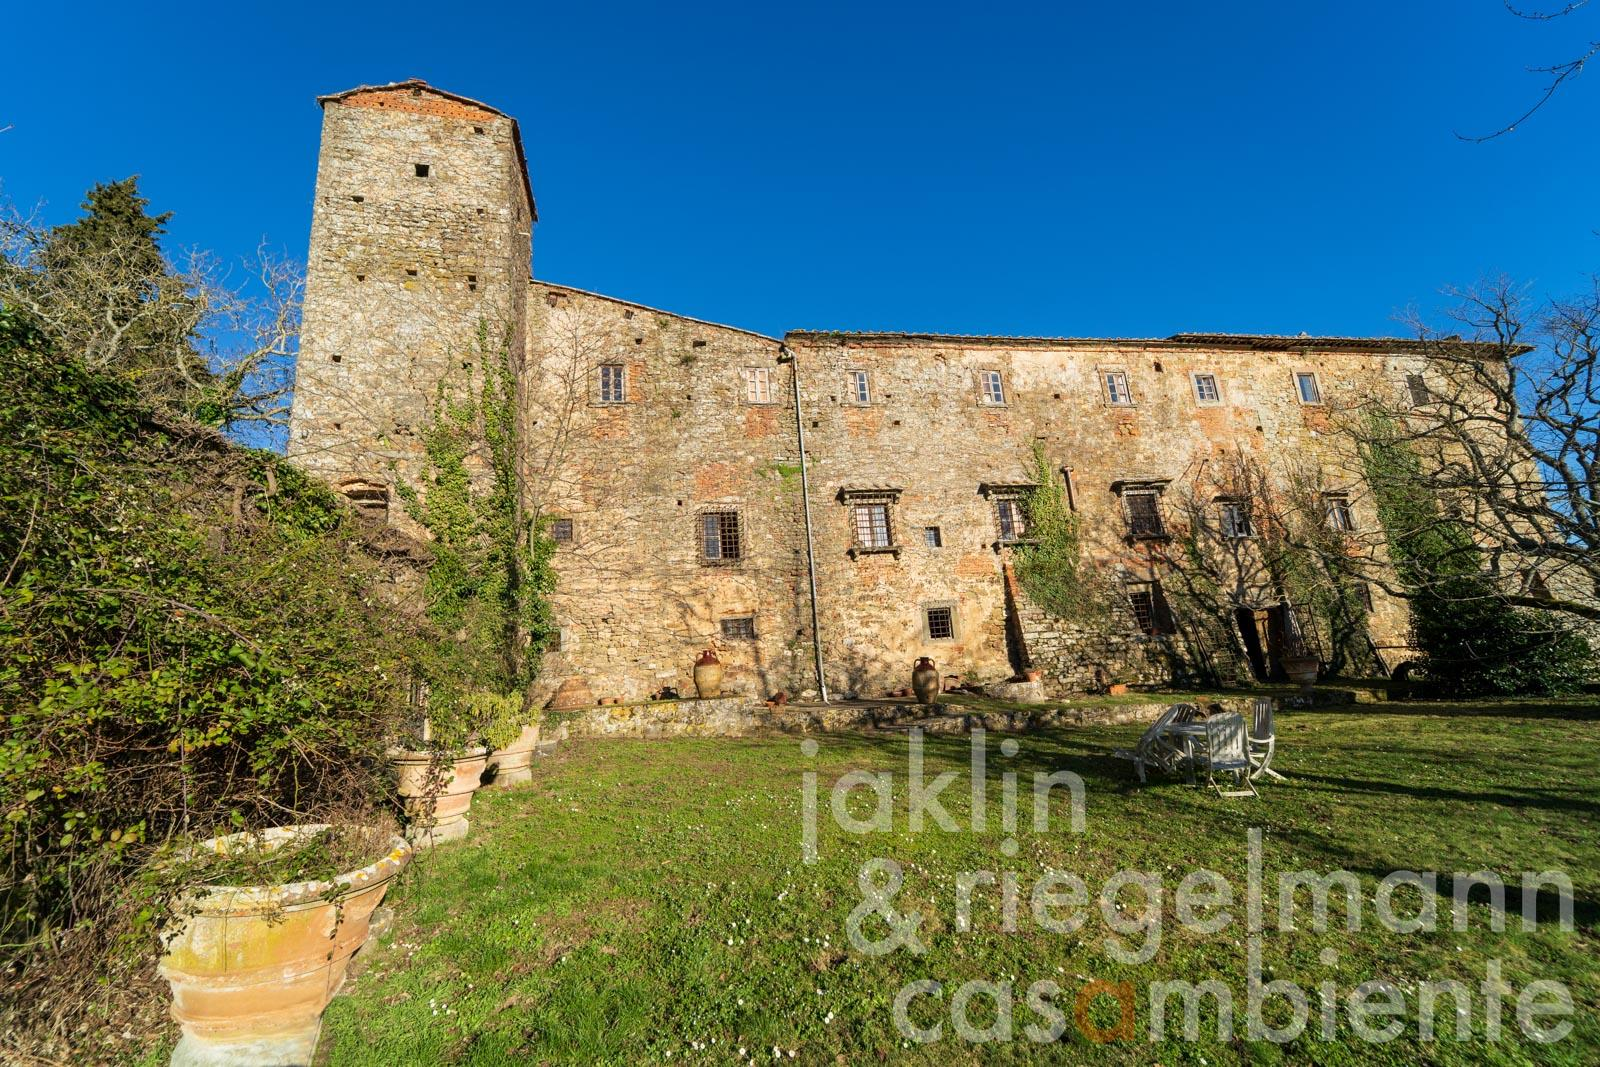 Great historical abbey from the 11th century in the hills of Chianti